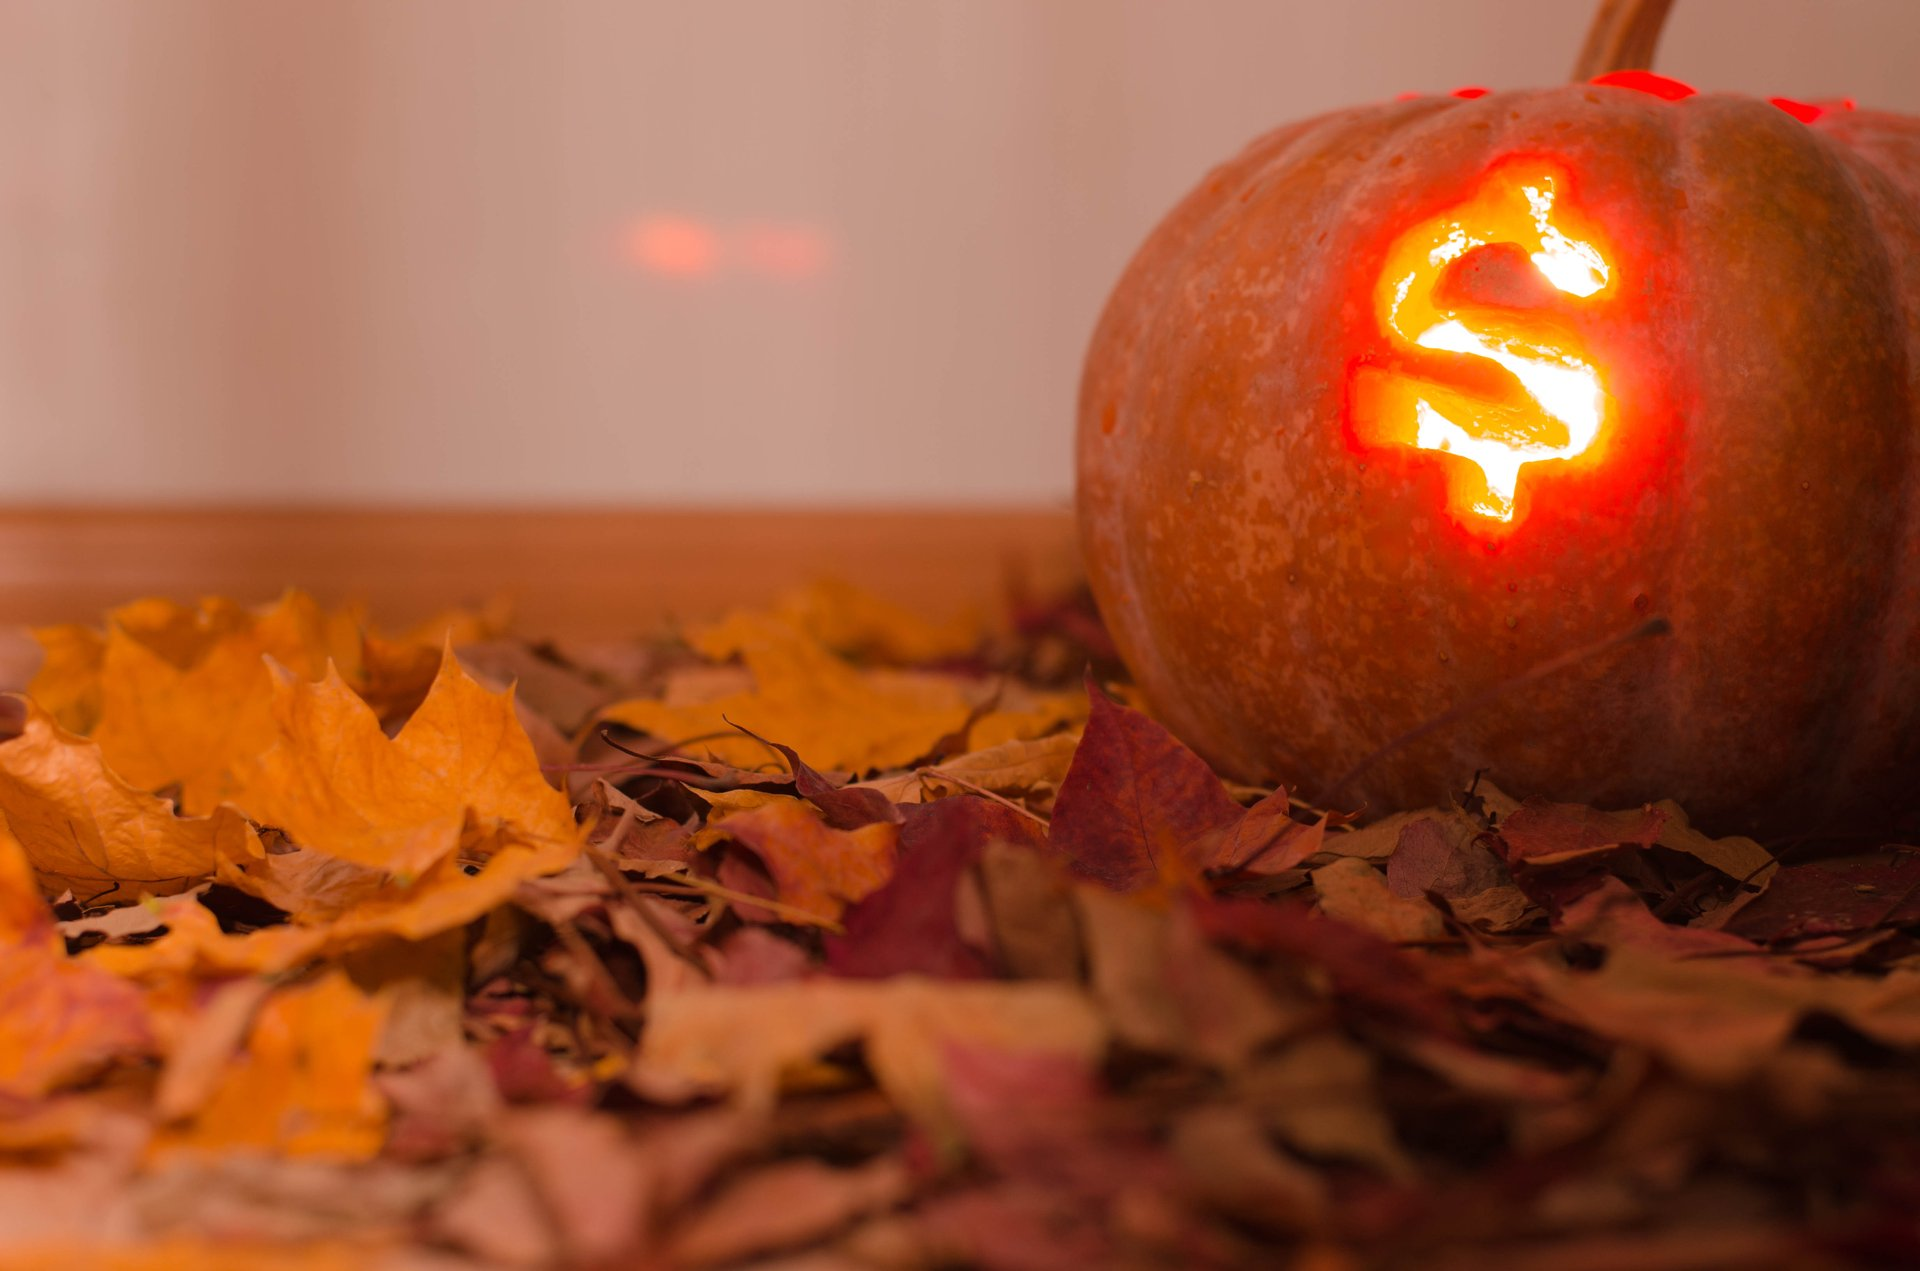 Jack-o-lantern caved with dollar sign